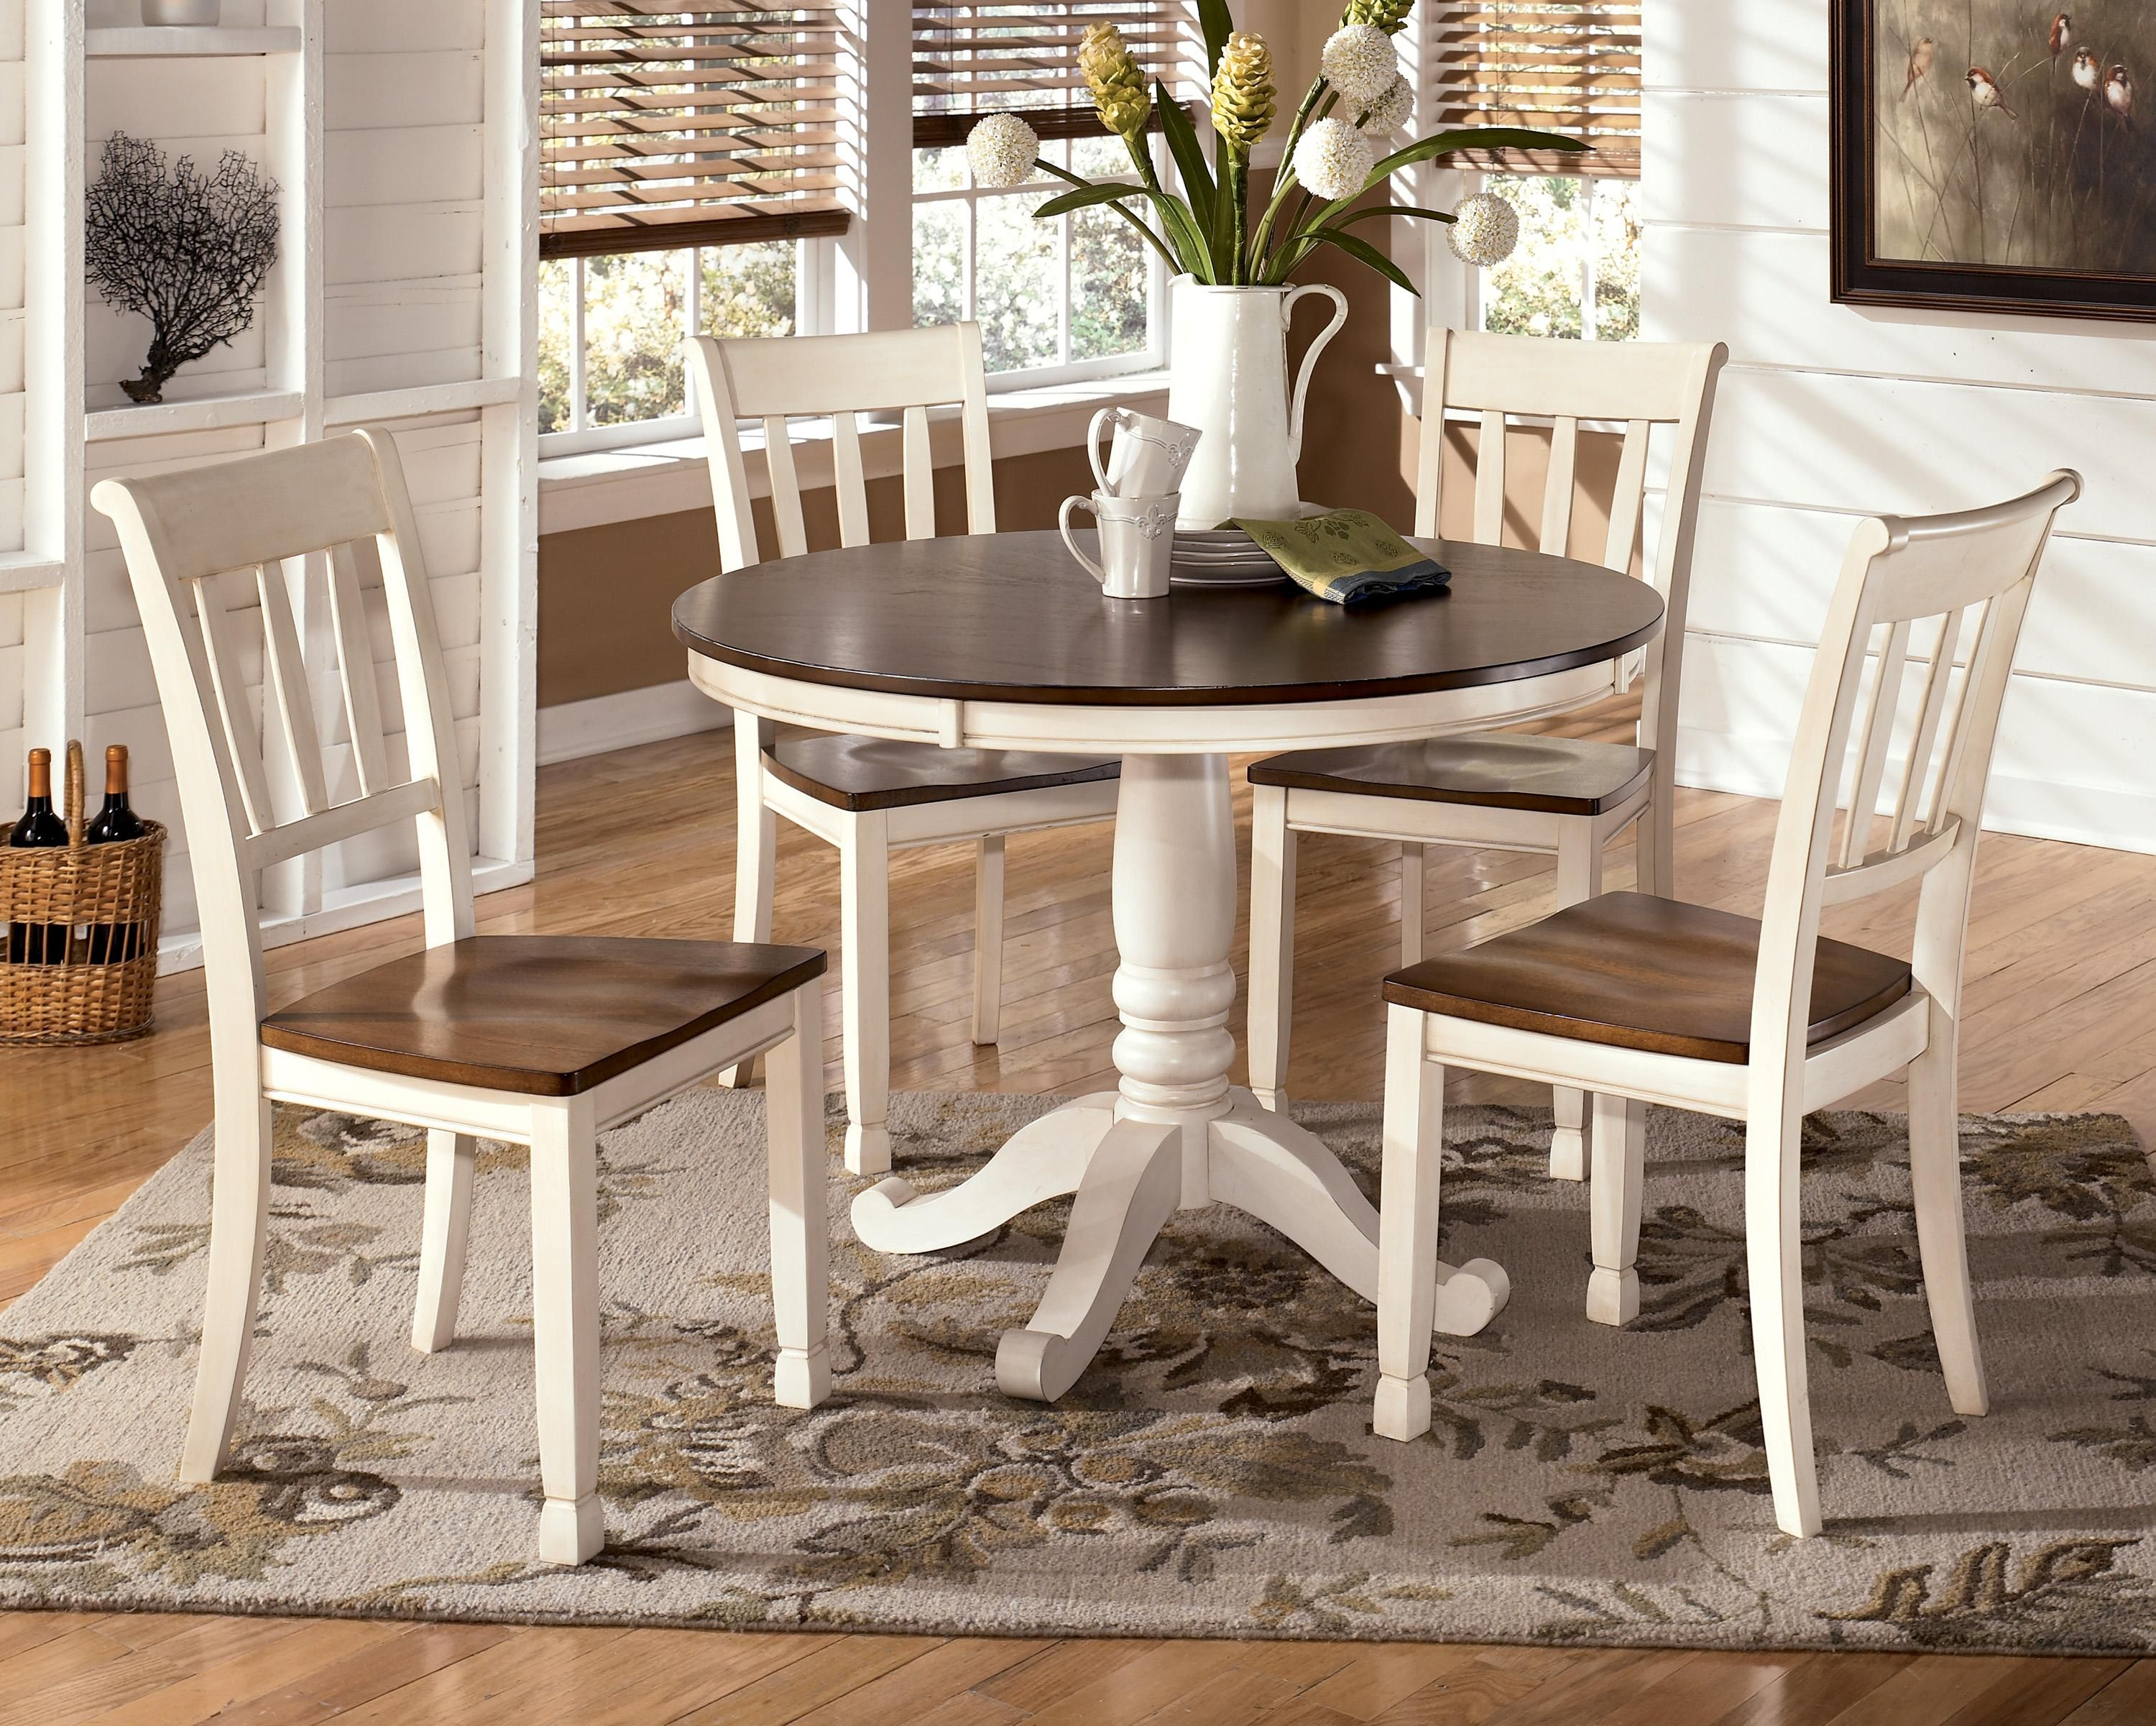 Whitesburg 5 Piece Two Tone Cottage Round Table Set By Ashley Furniture Signature Design At Del Sol Furniture Round Dining Table Sets Round Dining Room Round Dining Room Sets